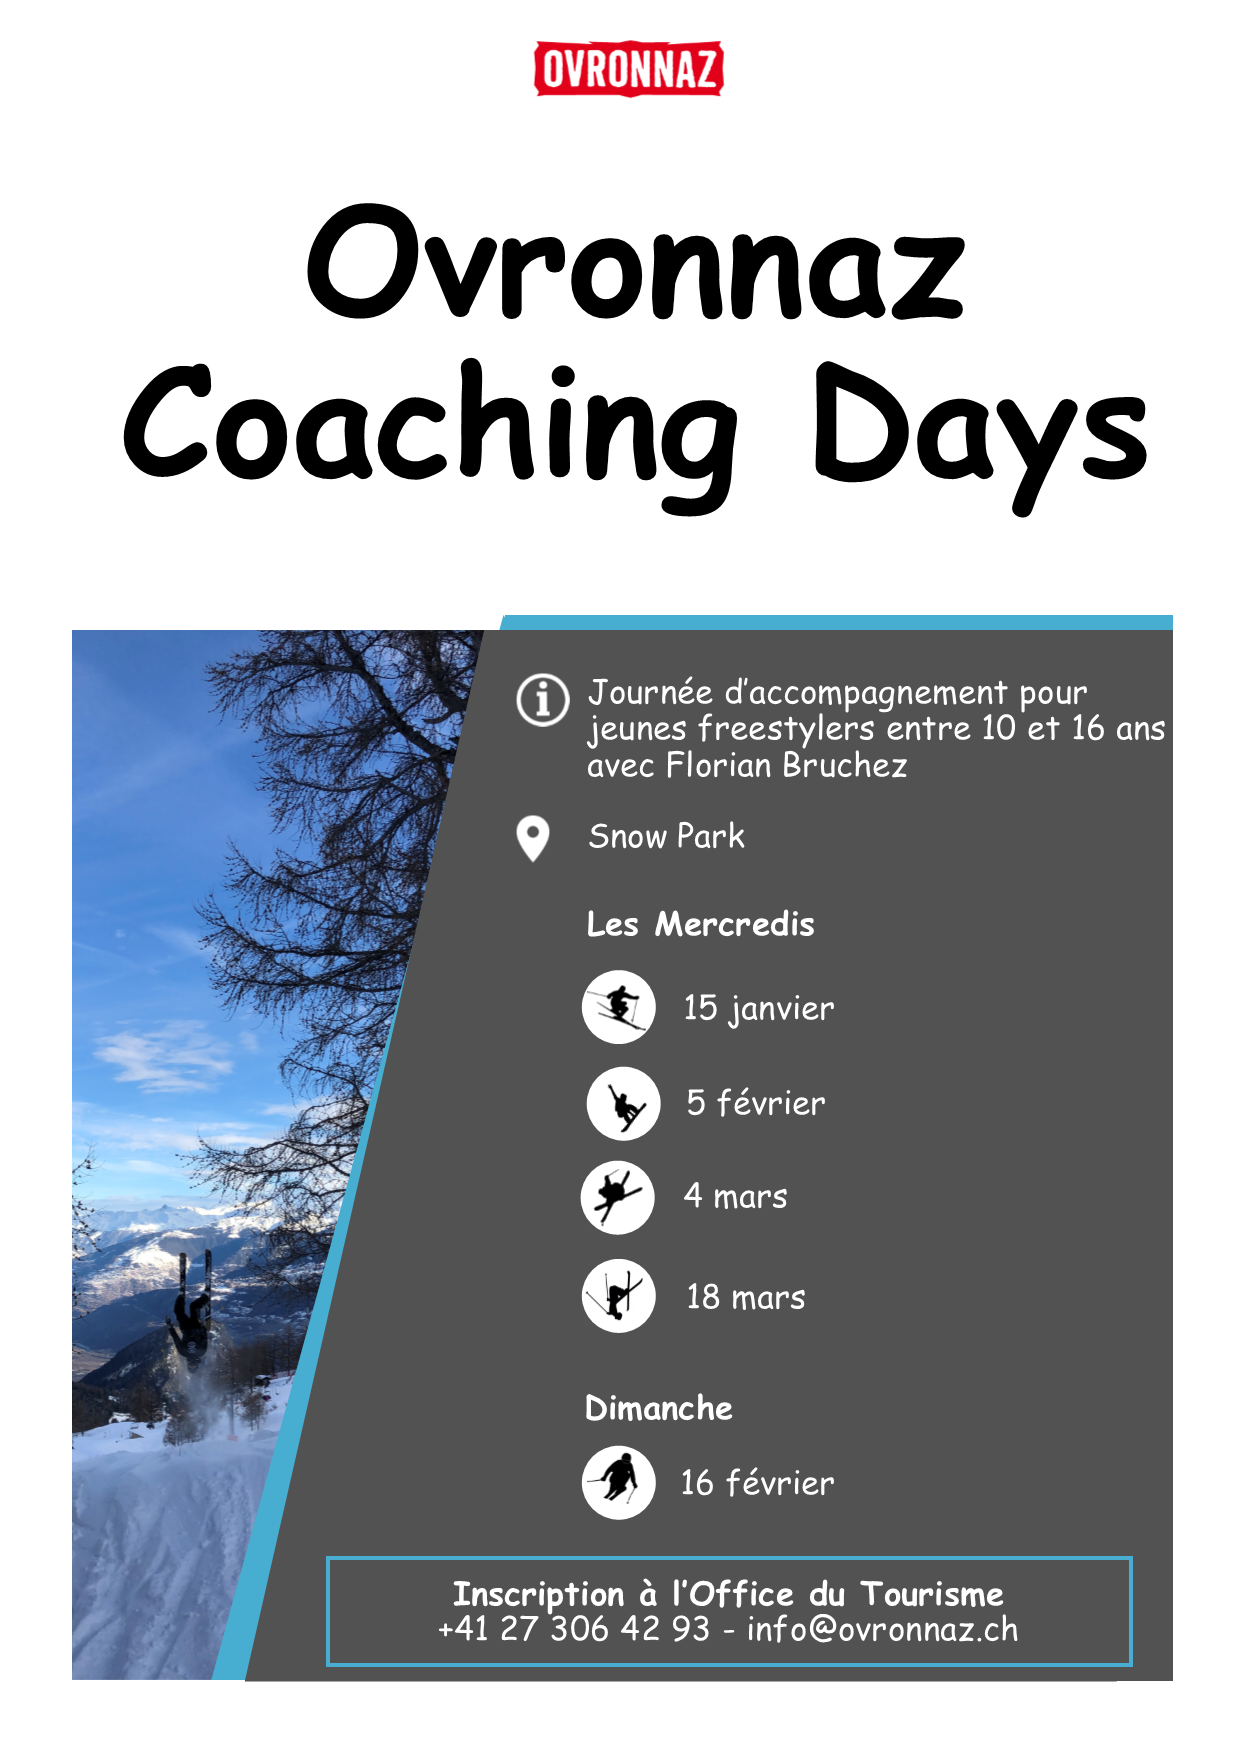 OVZ Coaching Days